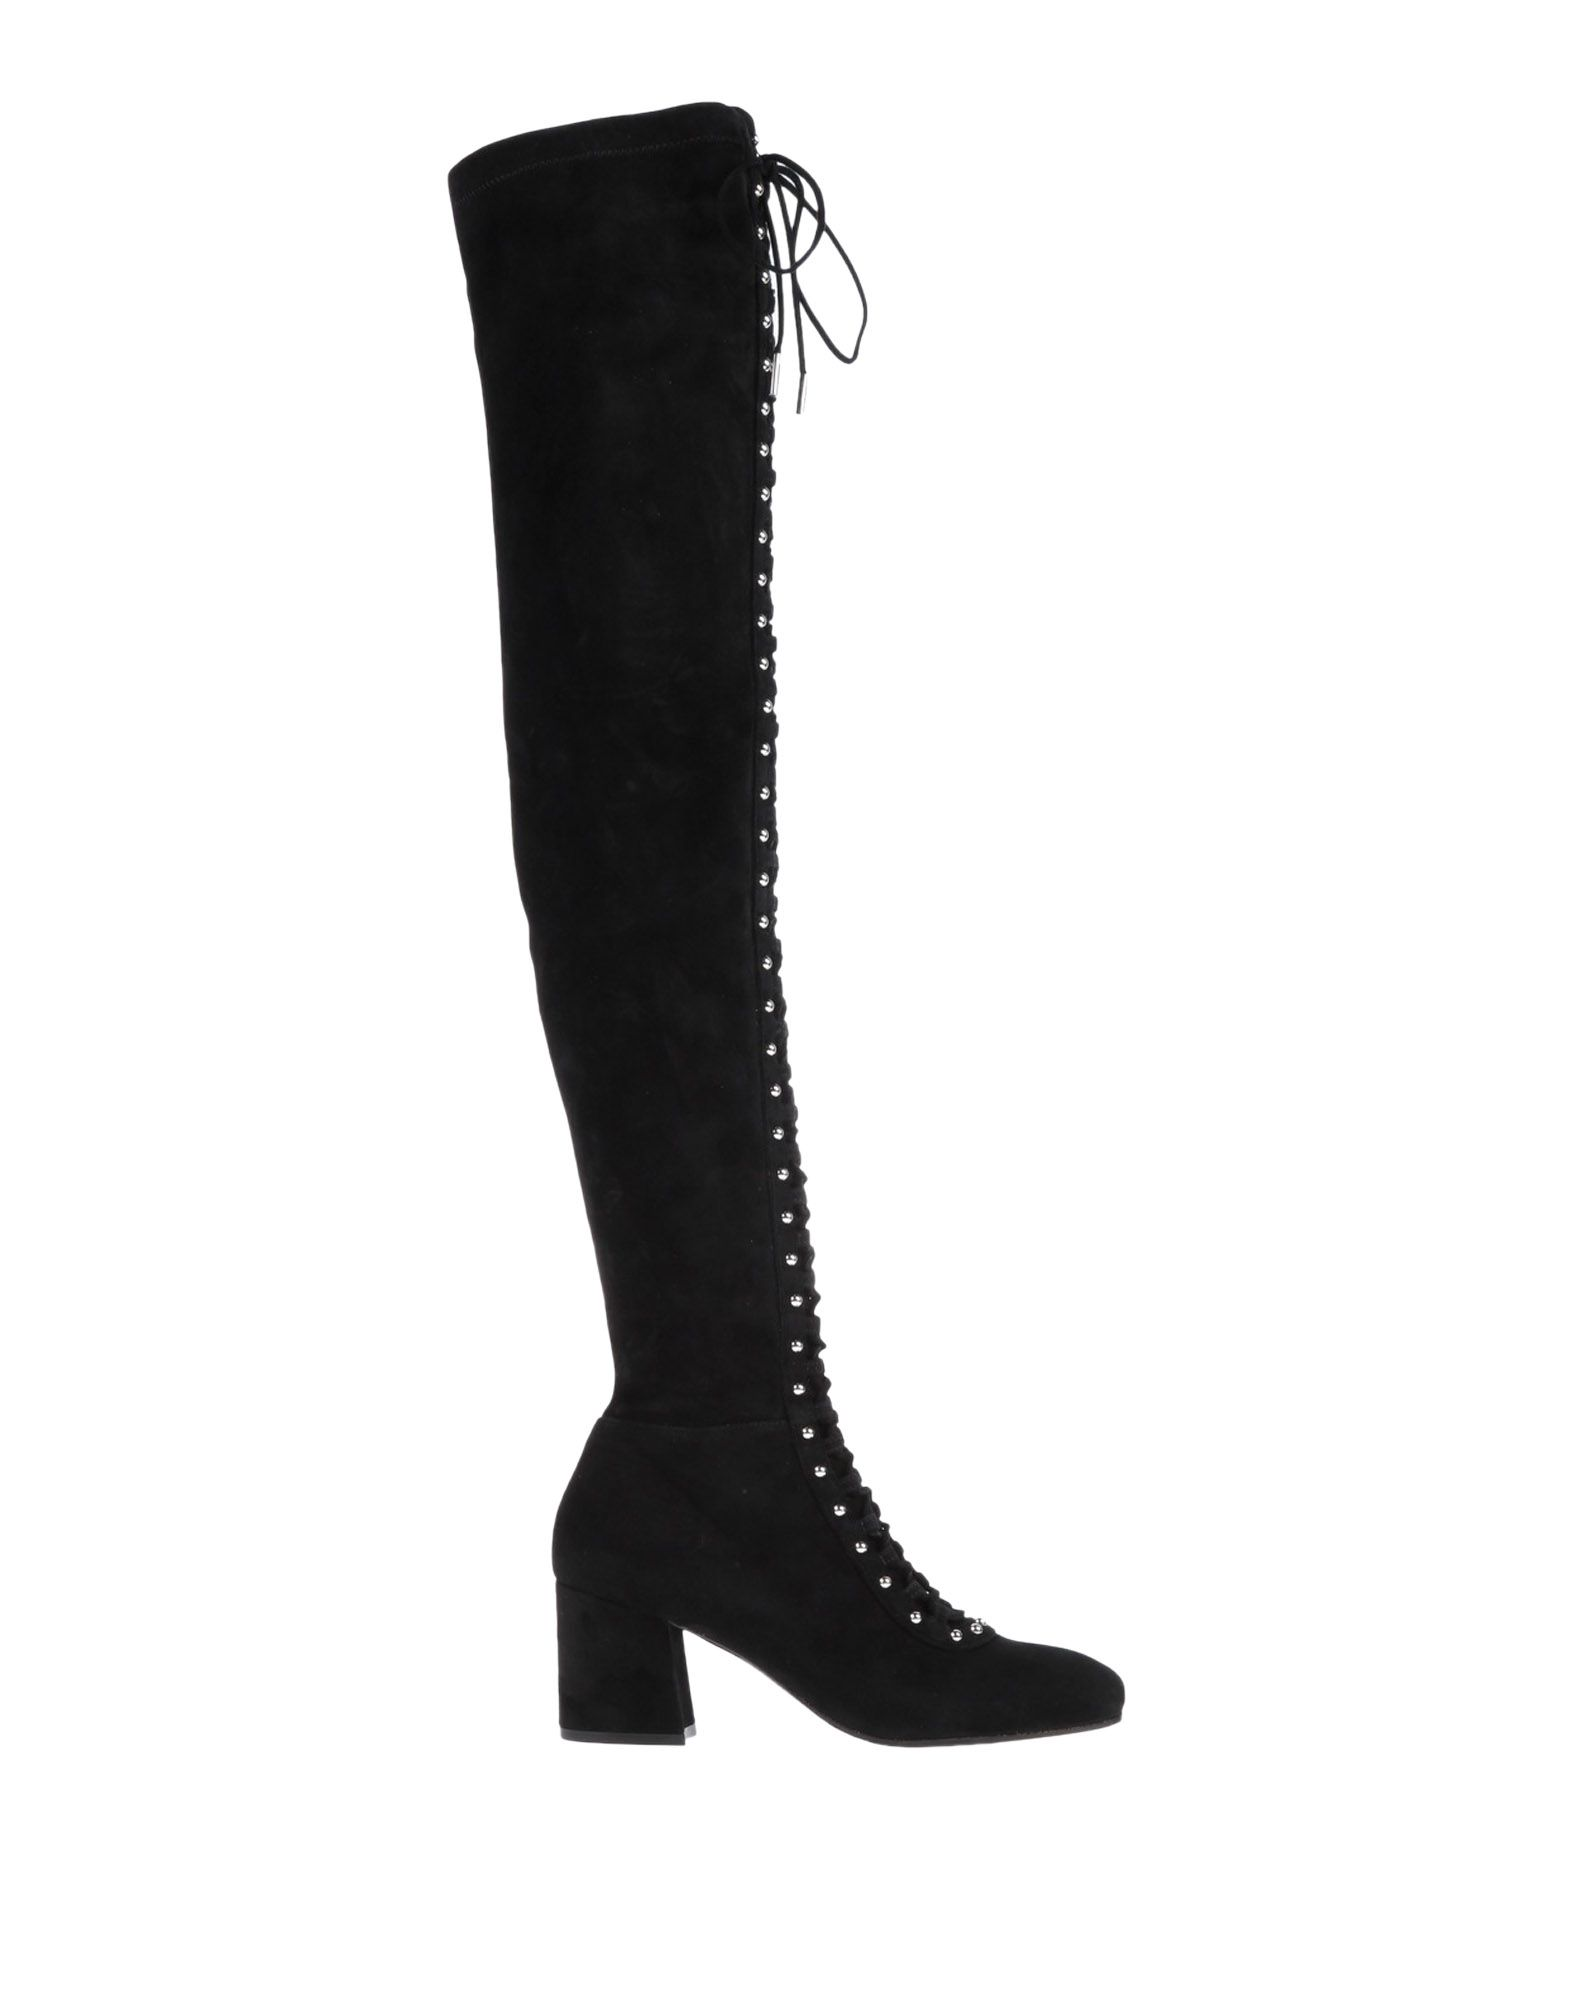 Le Silla Boots - Women Le Silla Boots online on 11523594SV  United Kingdom - 11523594SV on c9364a